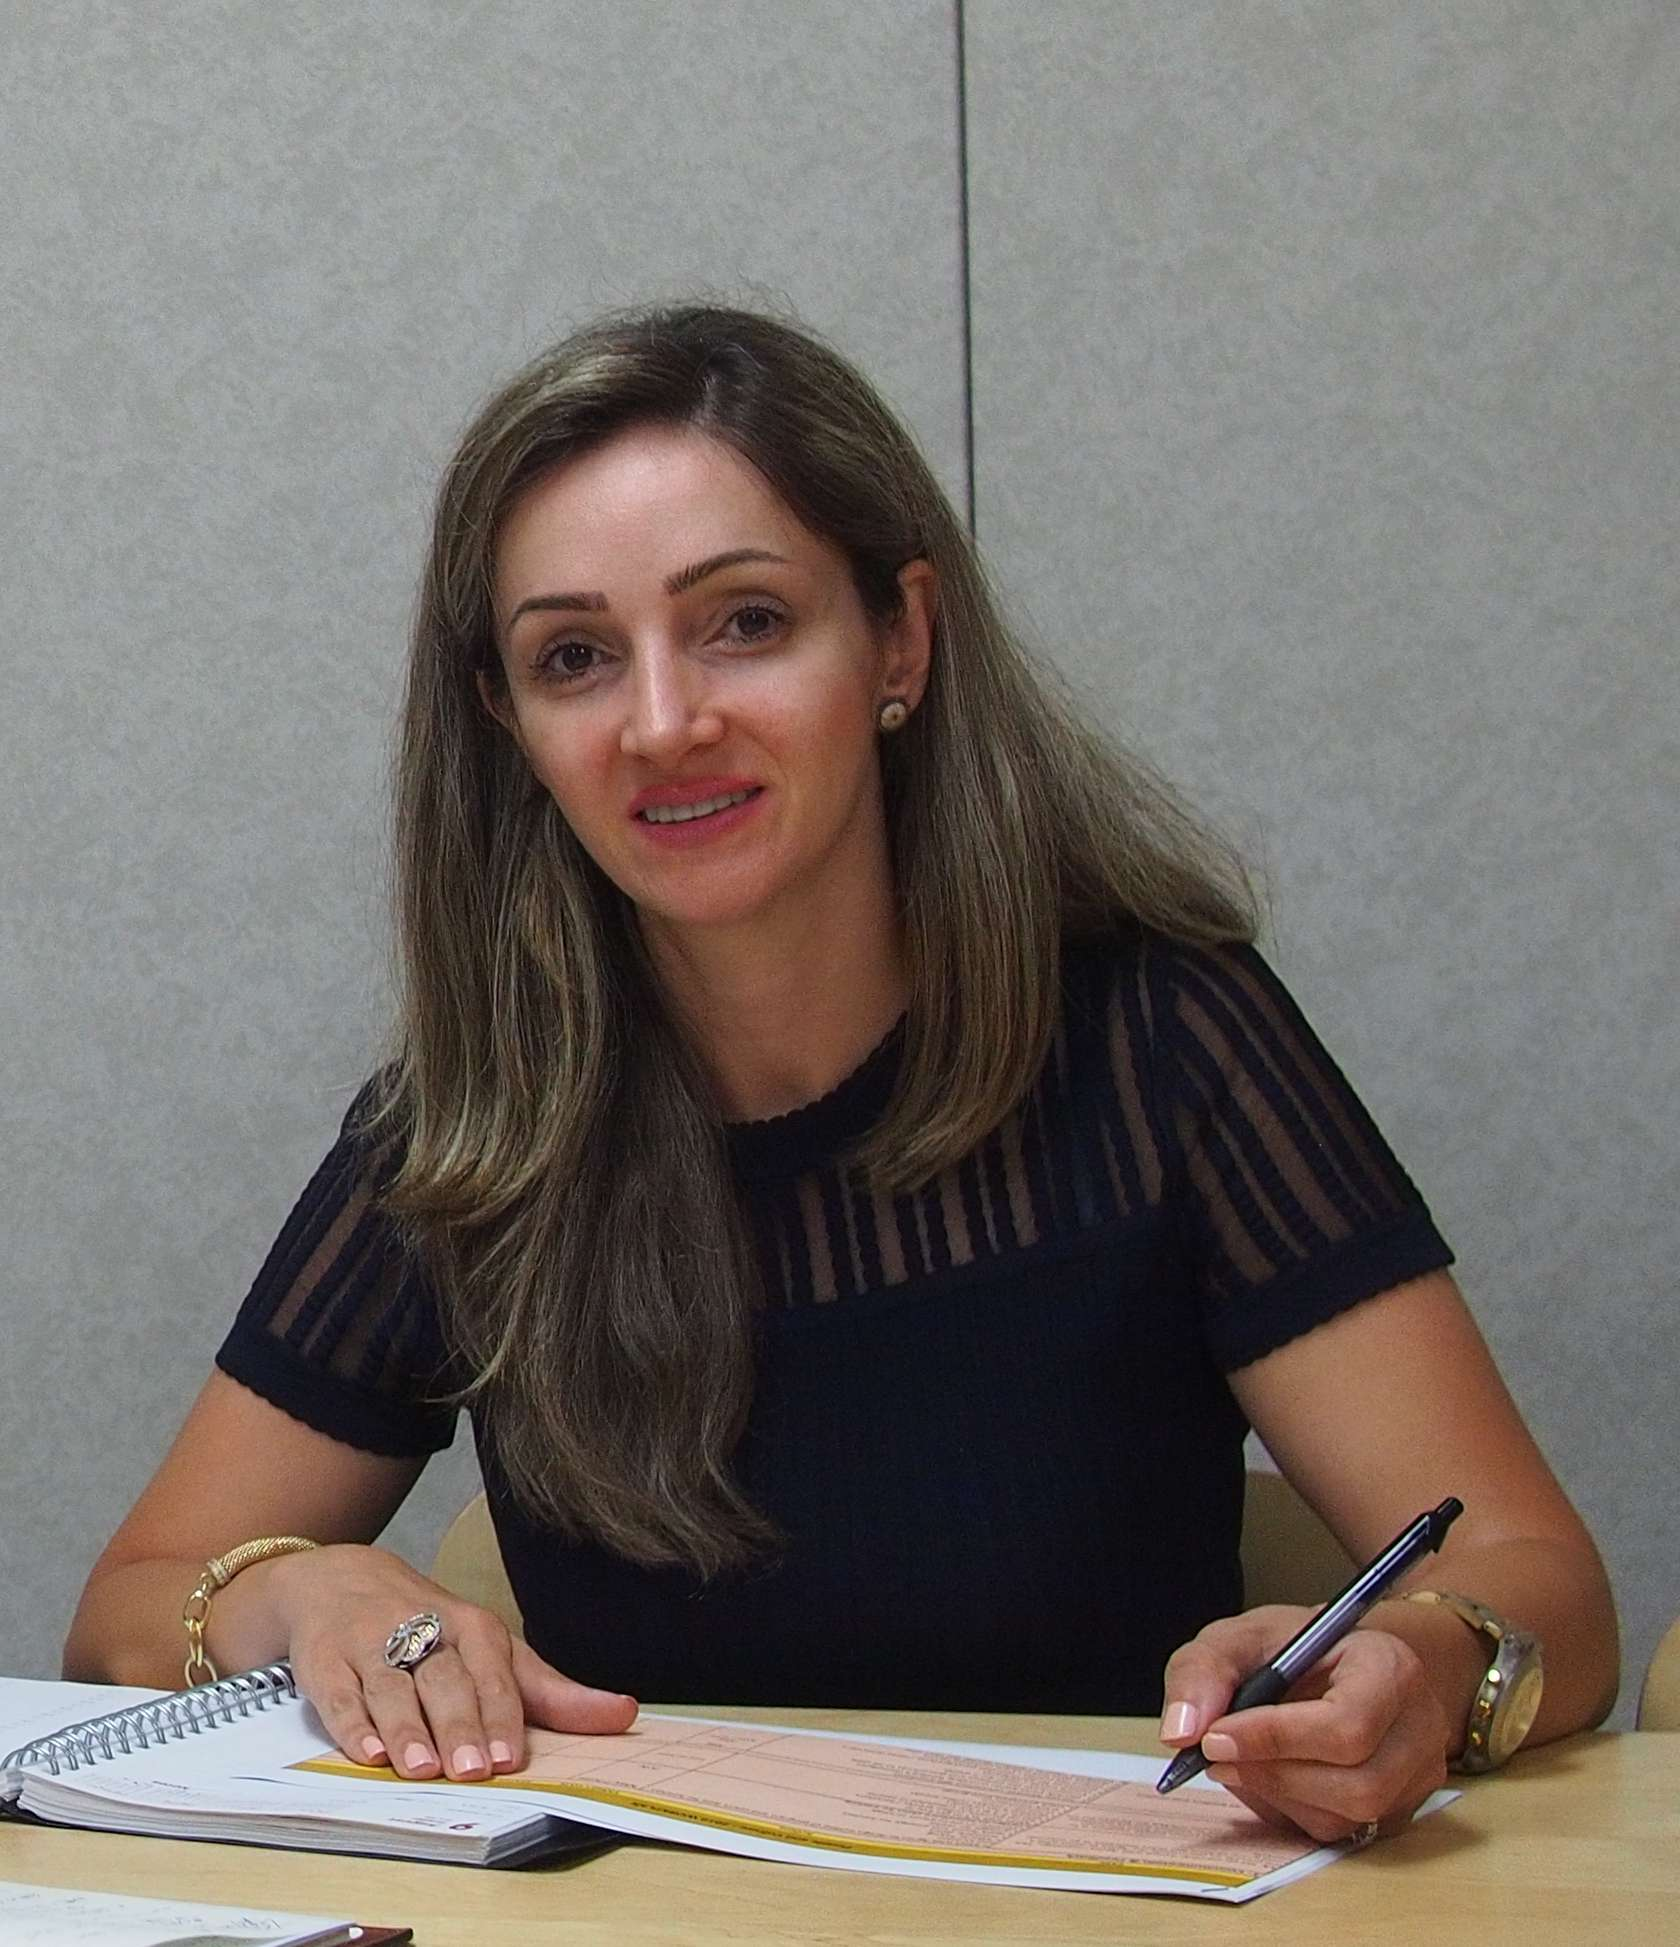 Photo of Tannaz Fadaei from Catholic Crosscultural Services